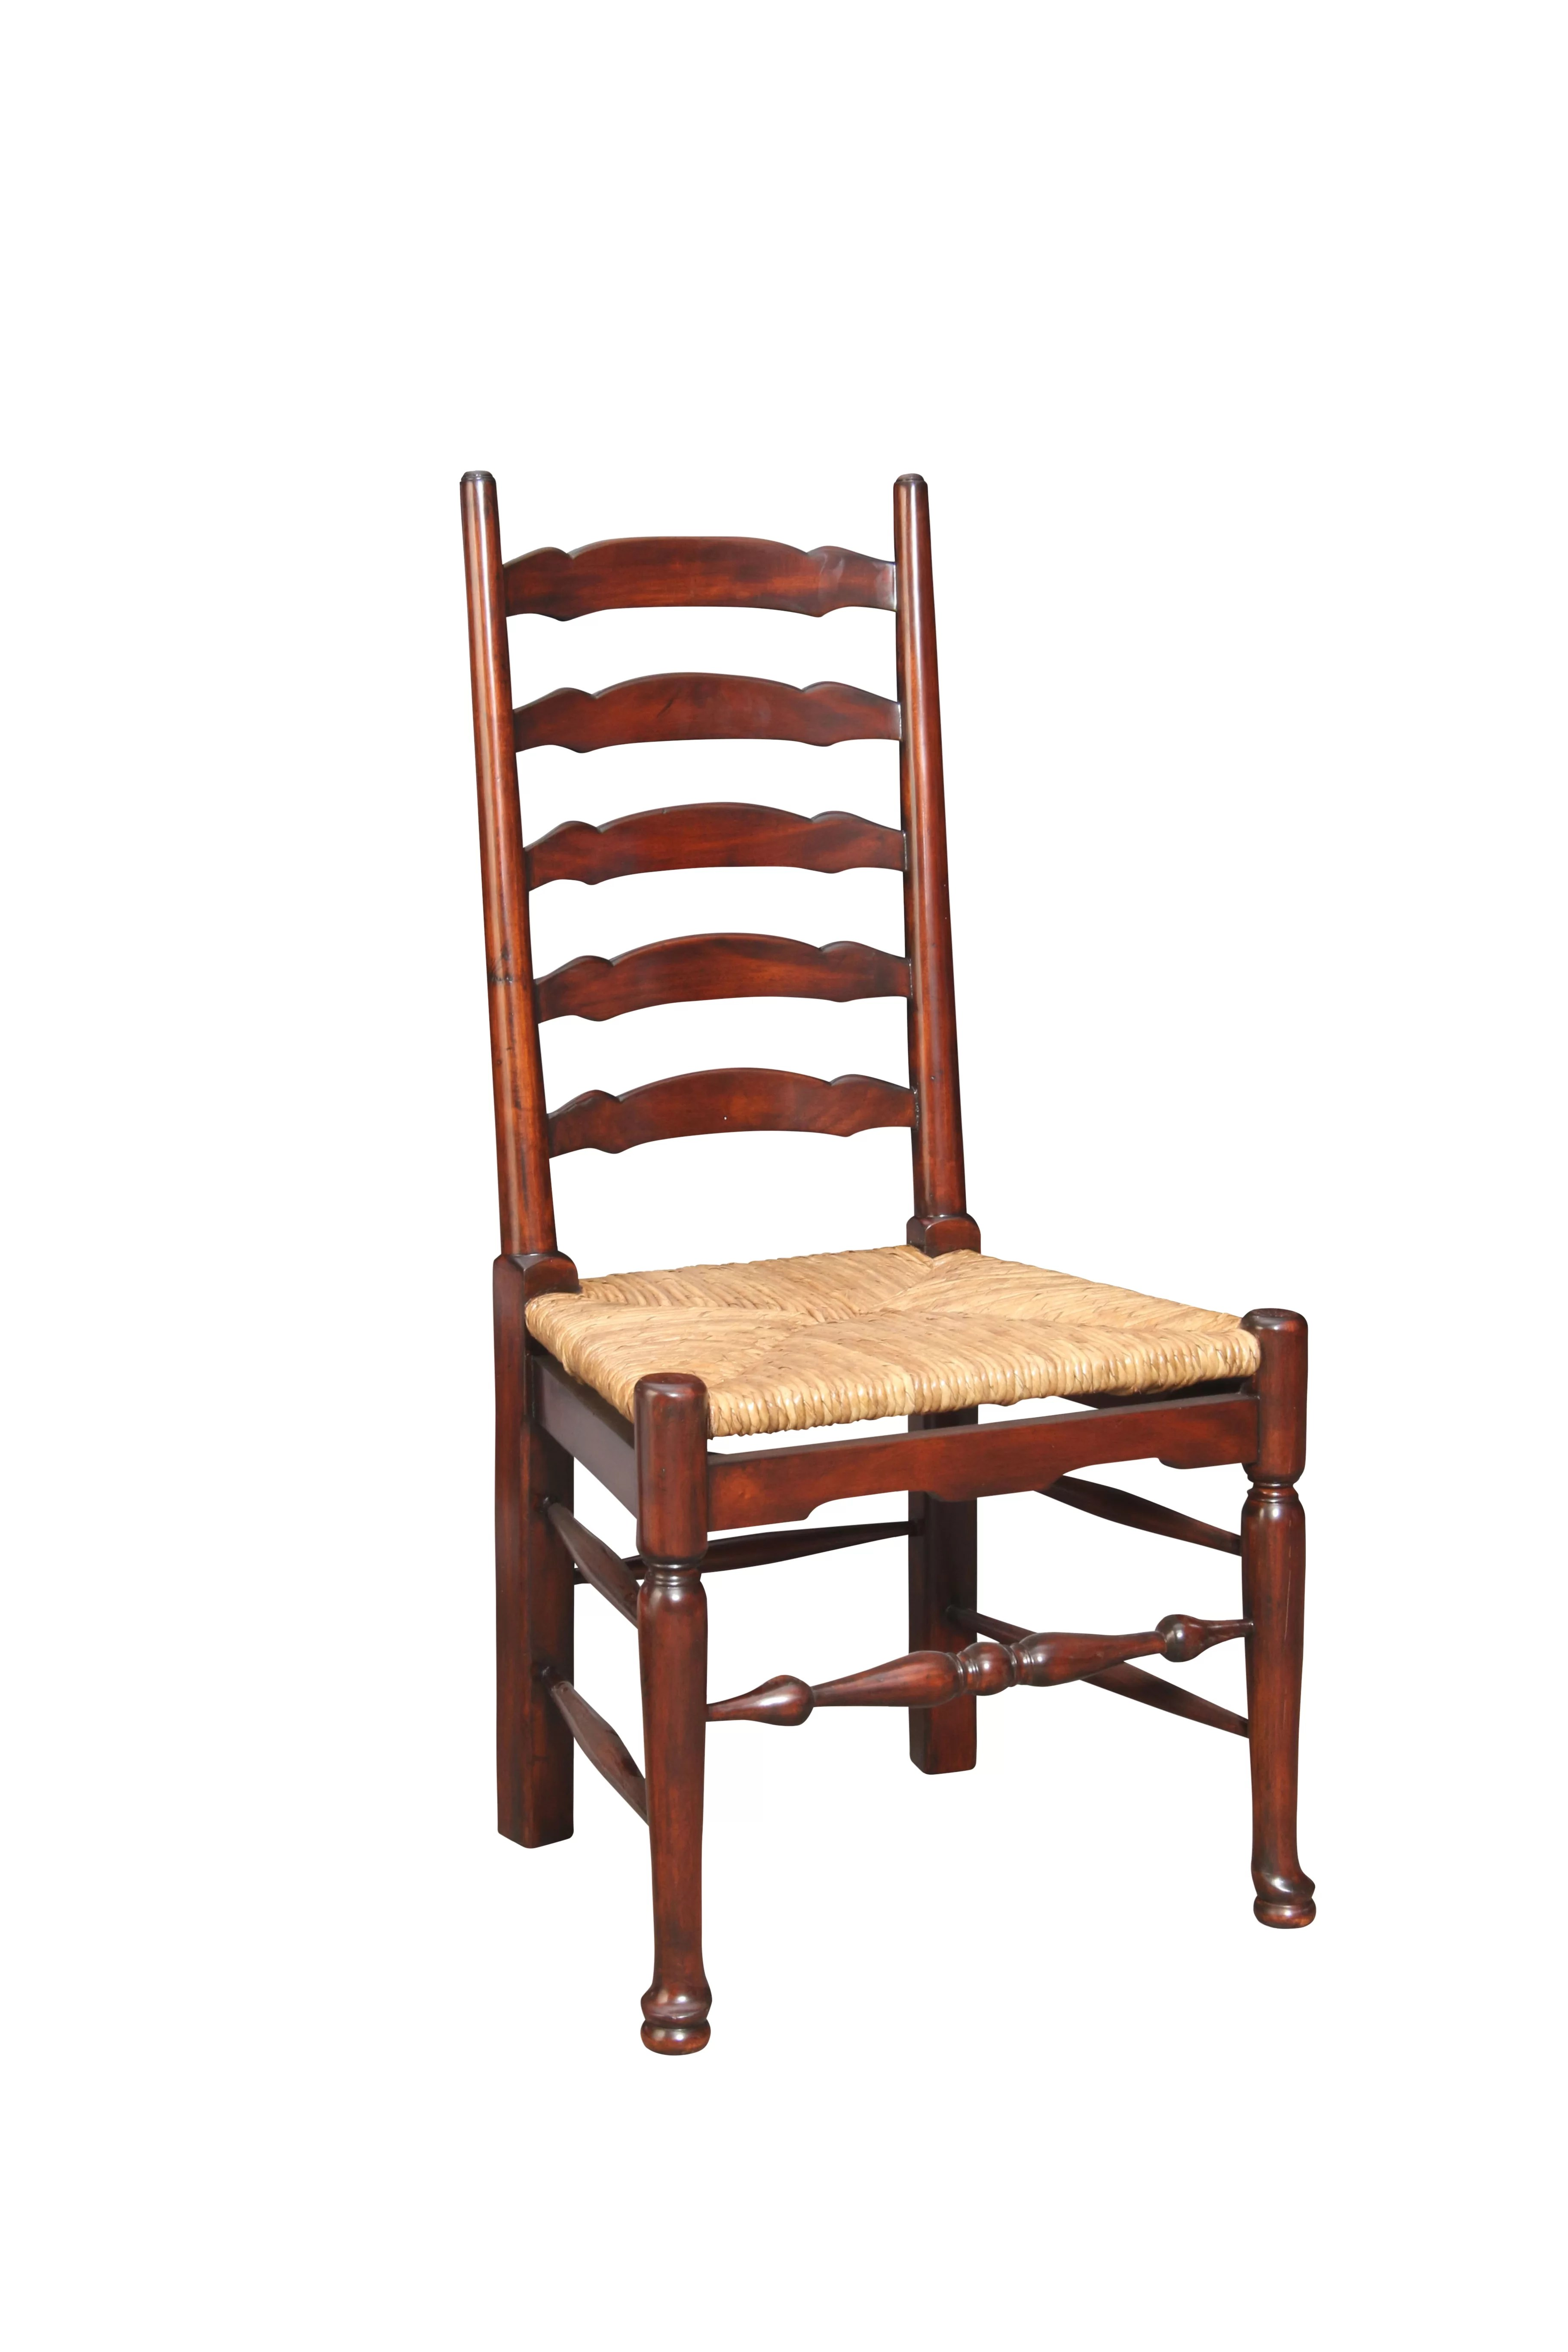 ladder back dining chairs situate chair company manor born furnishings yorkshire ladderback wayfair